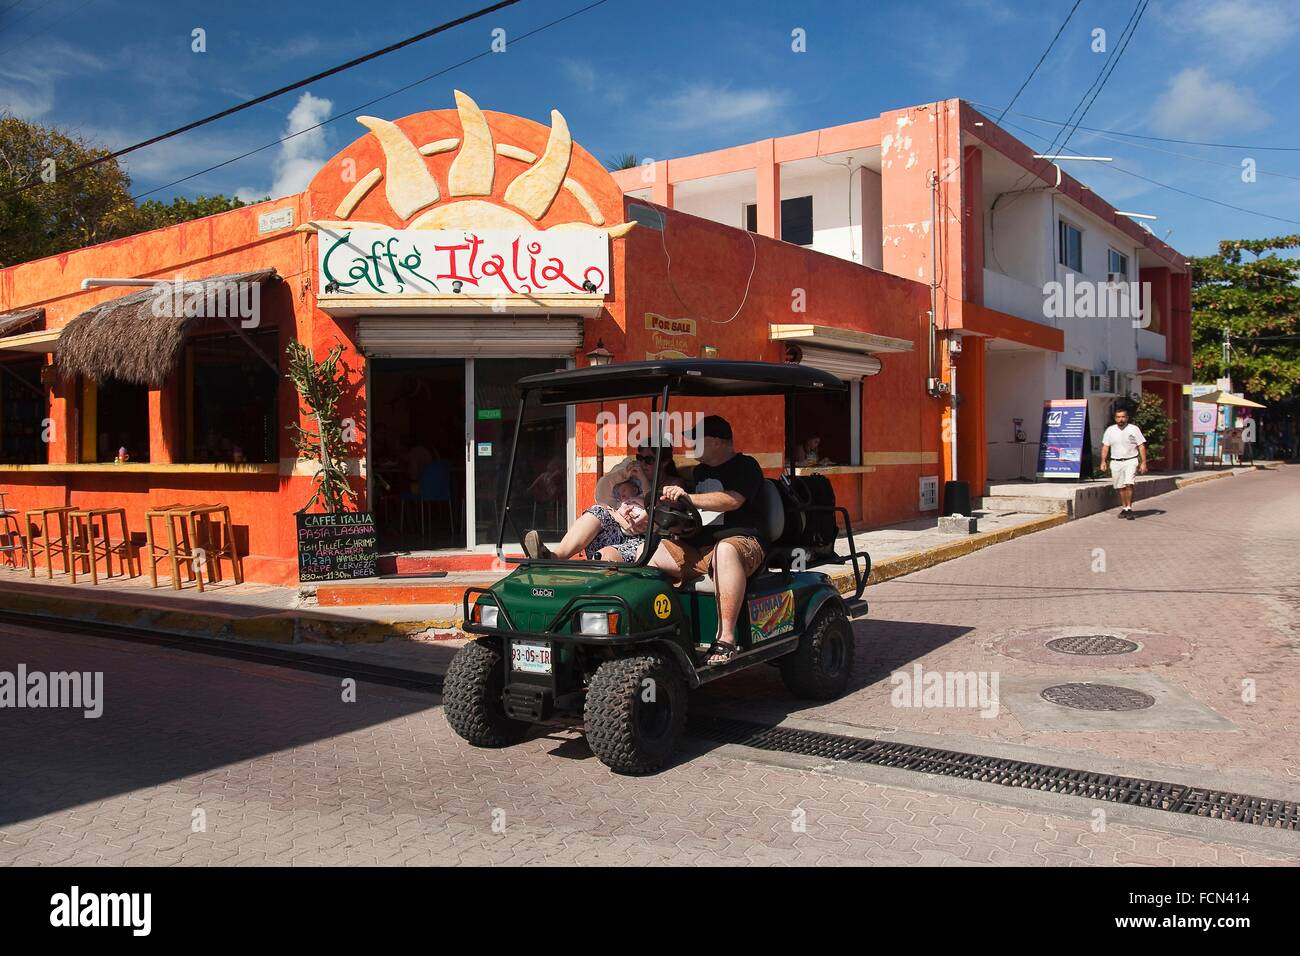 Tourst in a golf cart at town center, Isla Mujeres, Cancun, Quintana Roo, Yucatan Province, Mexico, Central America. - Stock Image